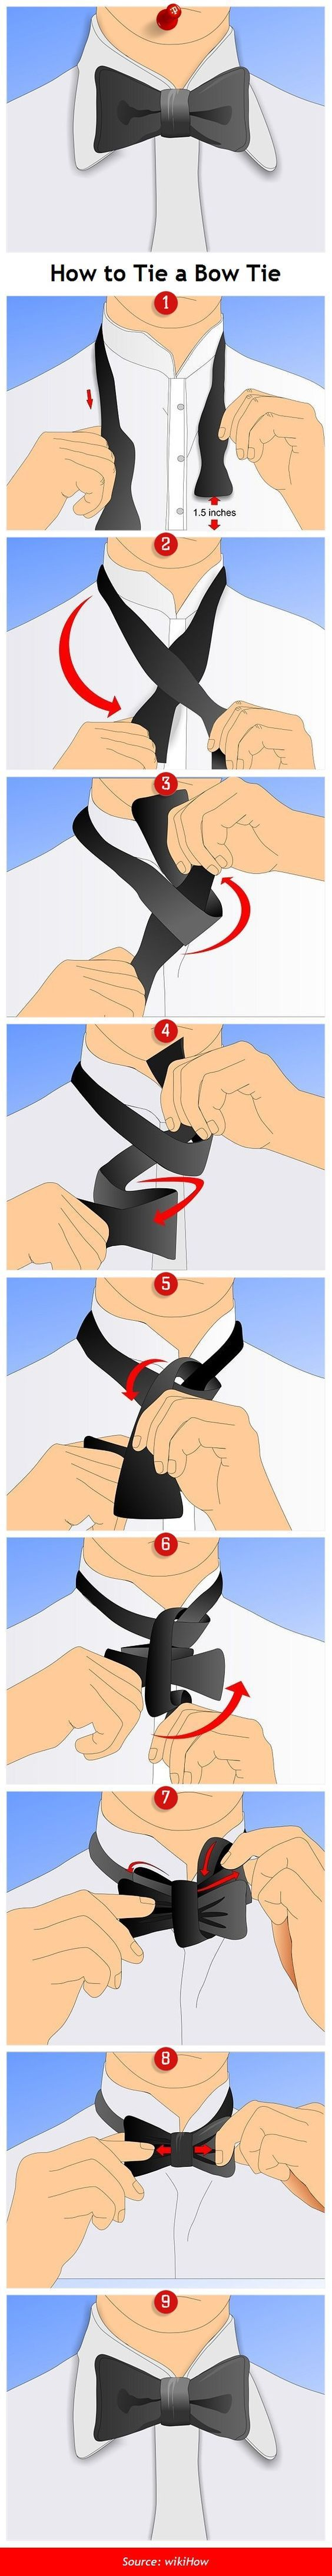 Here is a step-wise guide to learn how to tie your bow-tie in the easiest possible manner.